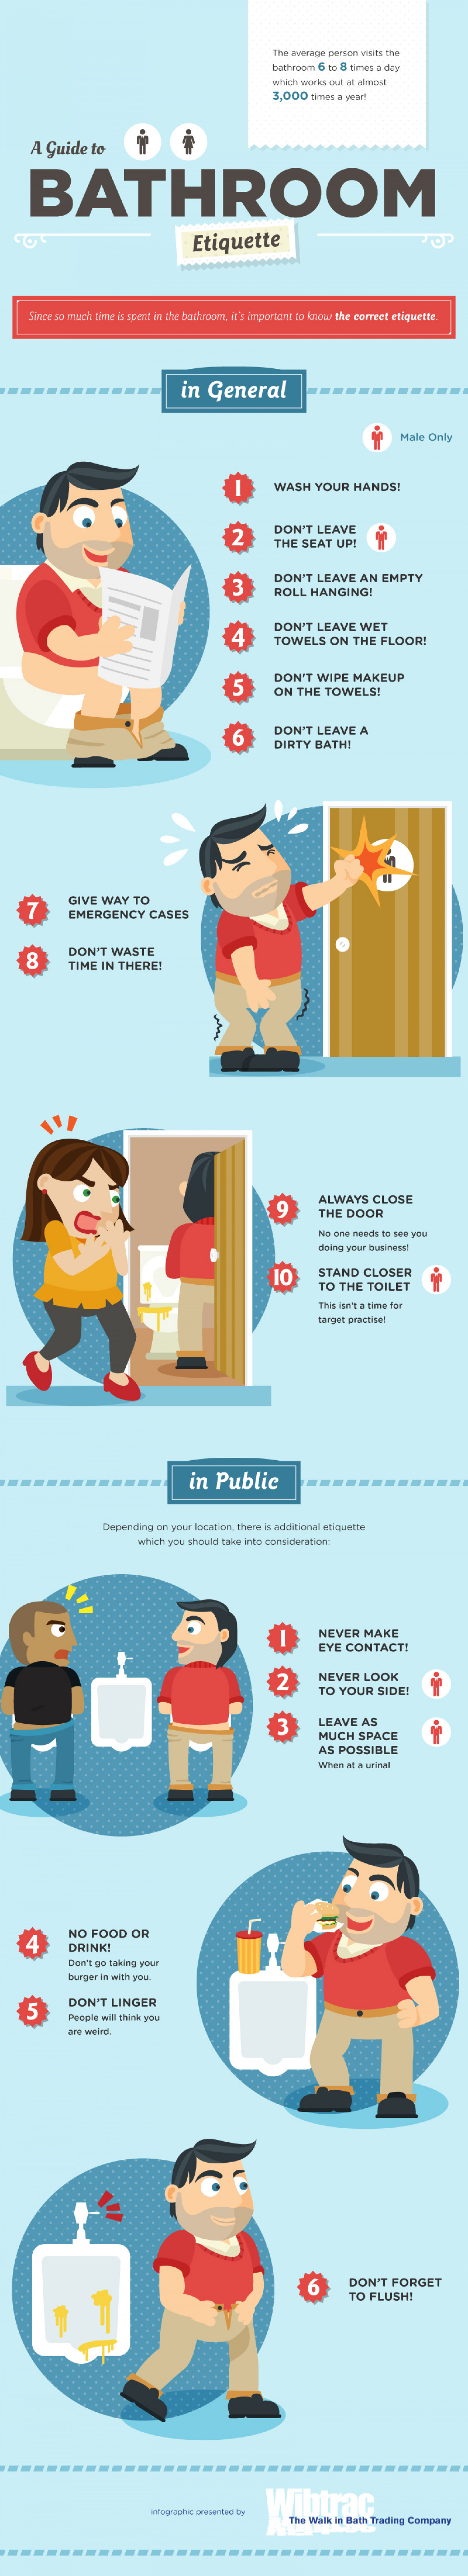 A guide to bathroom etiquette Infographic